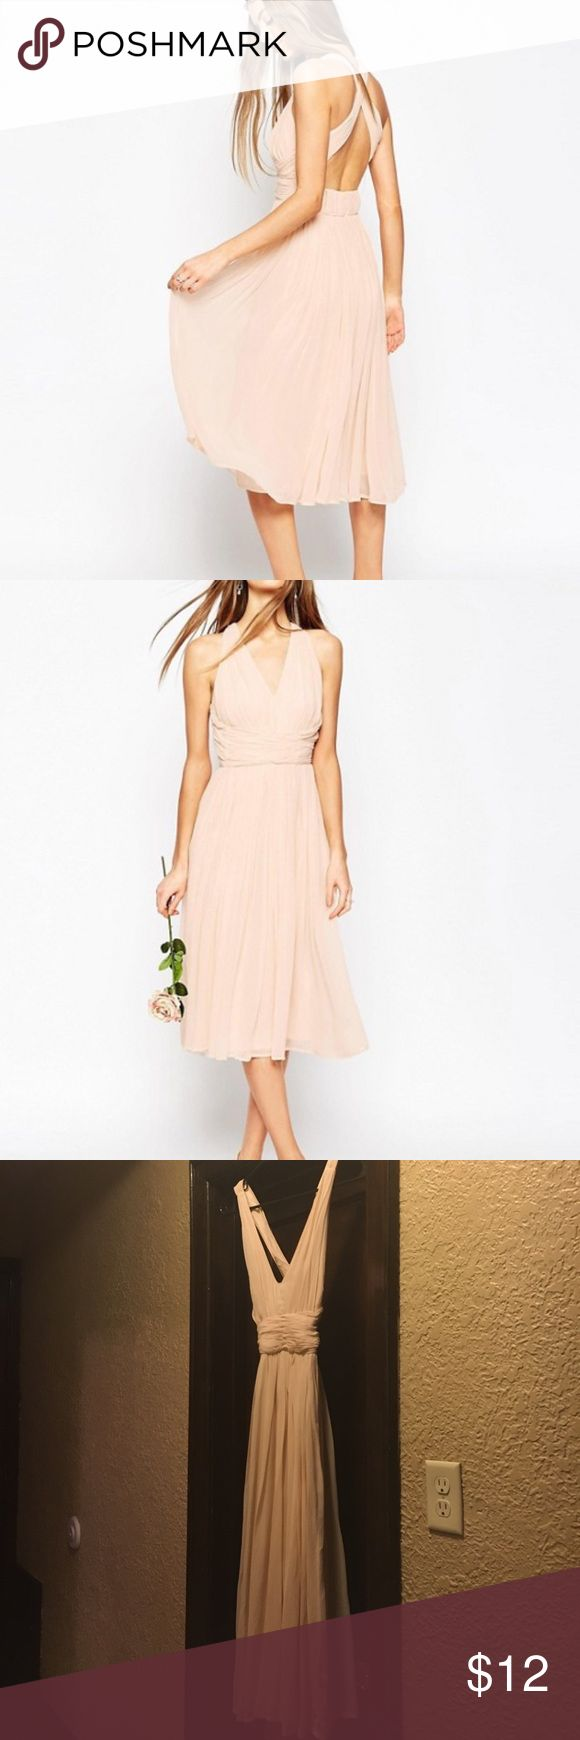 ASOS Size two pink dress This is a ASOS size 2 dress that is perfect for weddings! Asos Dresses Midi